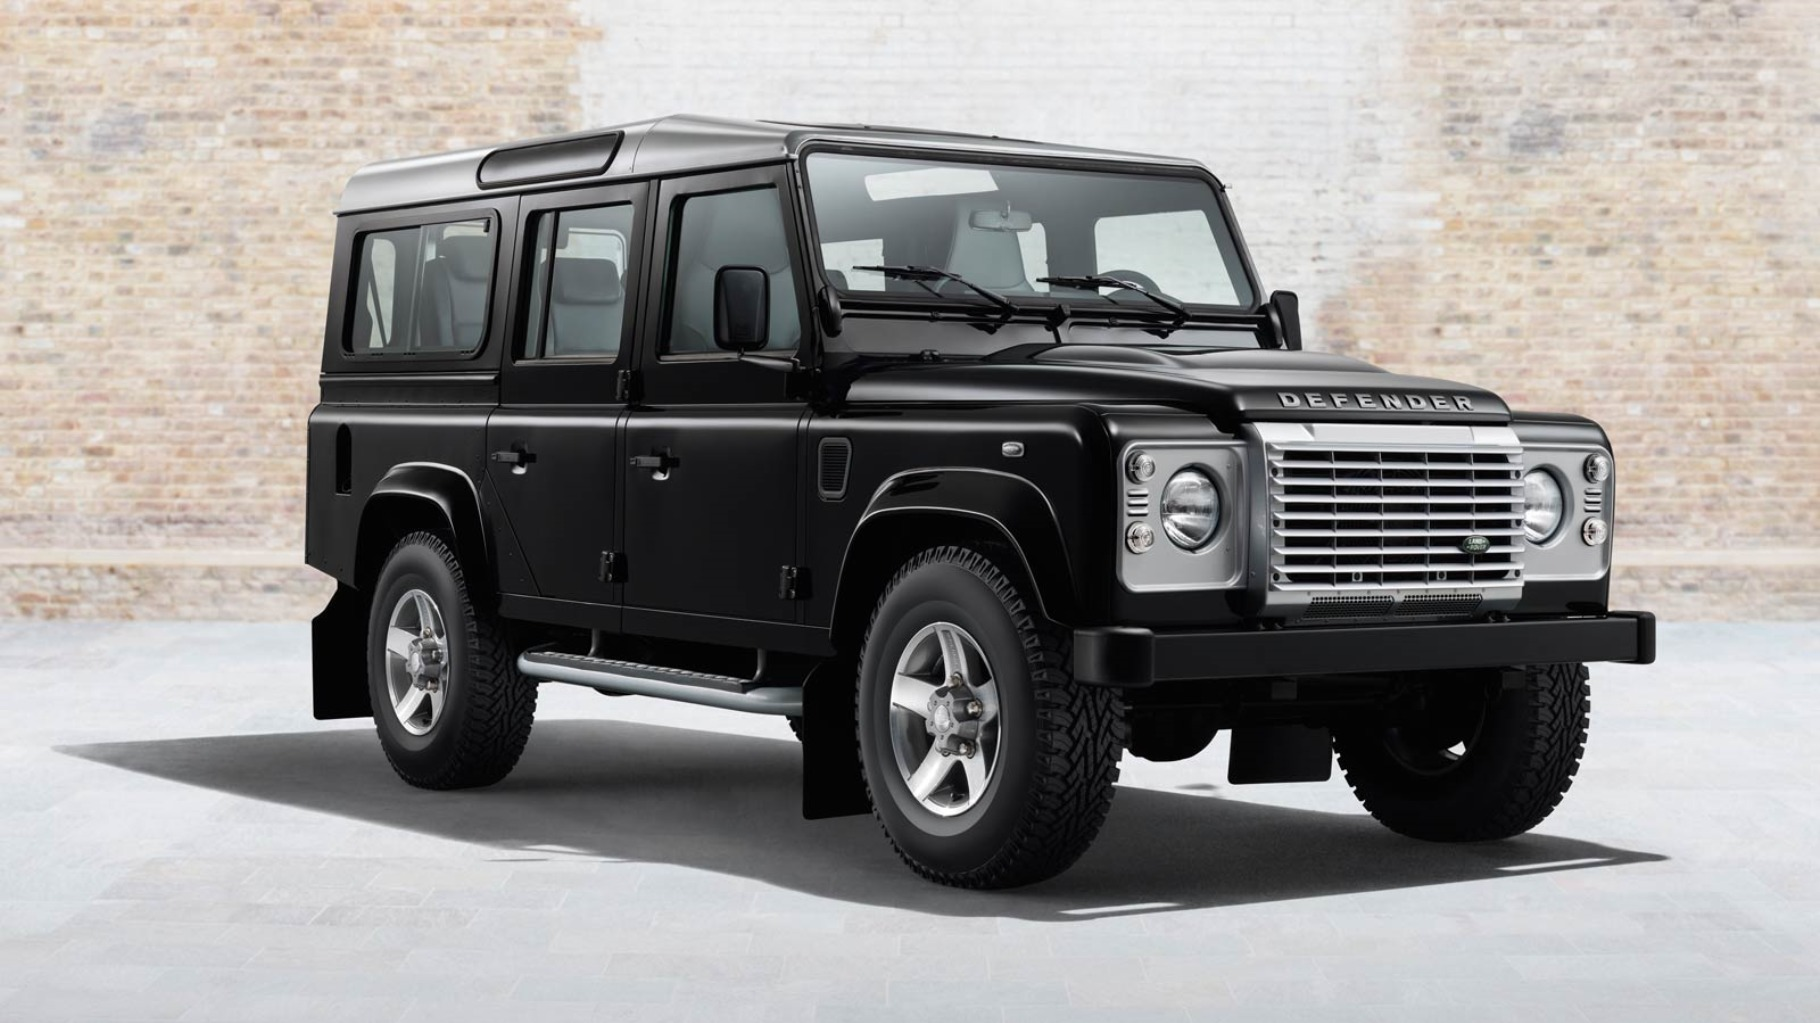 land rover defender interior 2016 with Land Rover Releases A New Defender Heritage Program on New Land Rover Defender Launch 2018 furthermore 1110434 the 2017 Ford Raptor Merges Awd And 4wd furthermore 2152 Dacia Grand Duster Ausblick Suv 7 Sitzen Ab 2018 together with Index also Deep Dive All New 2019 Land Rover Defender An Icon Reinvented.